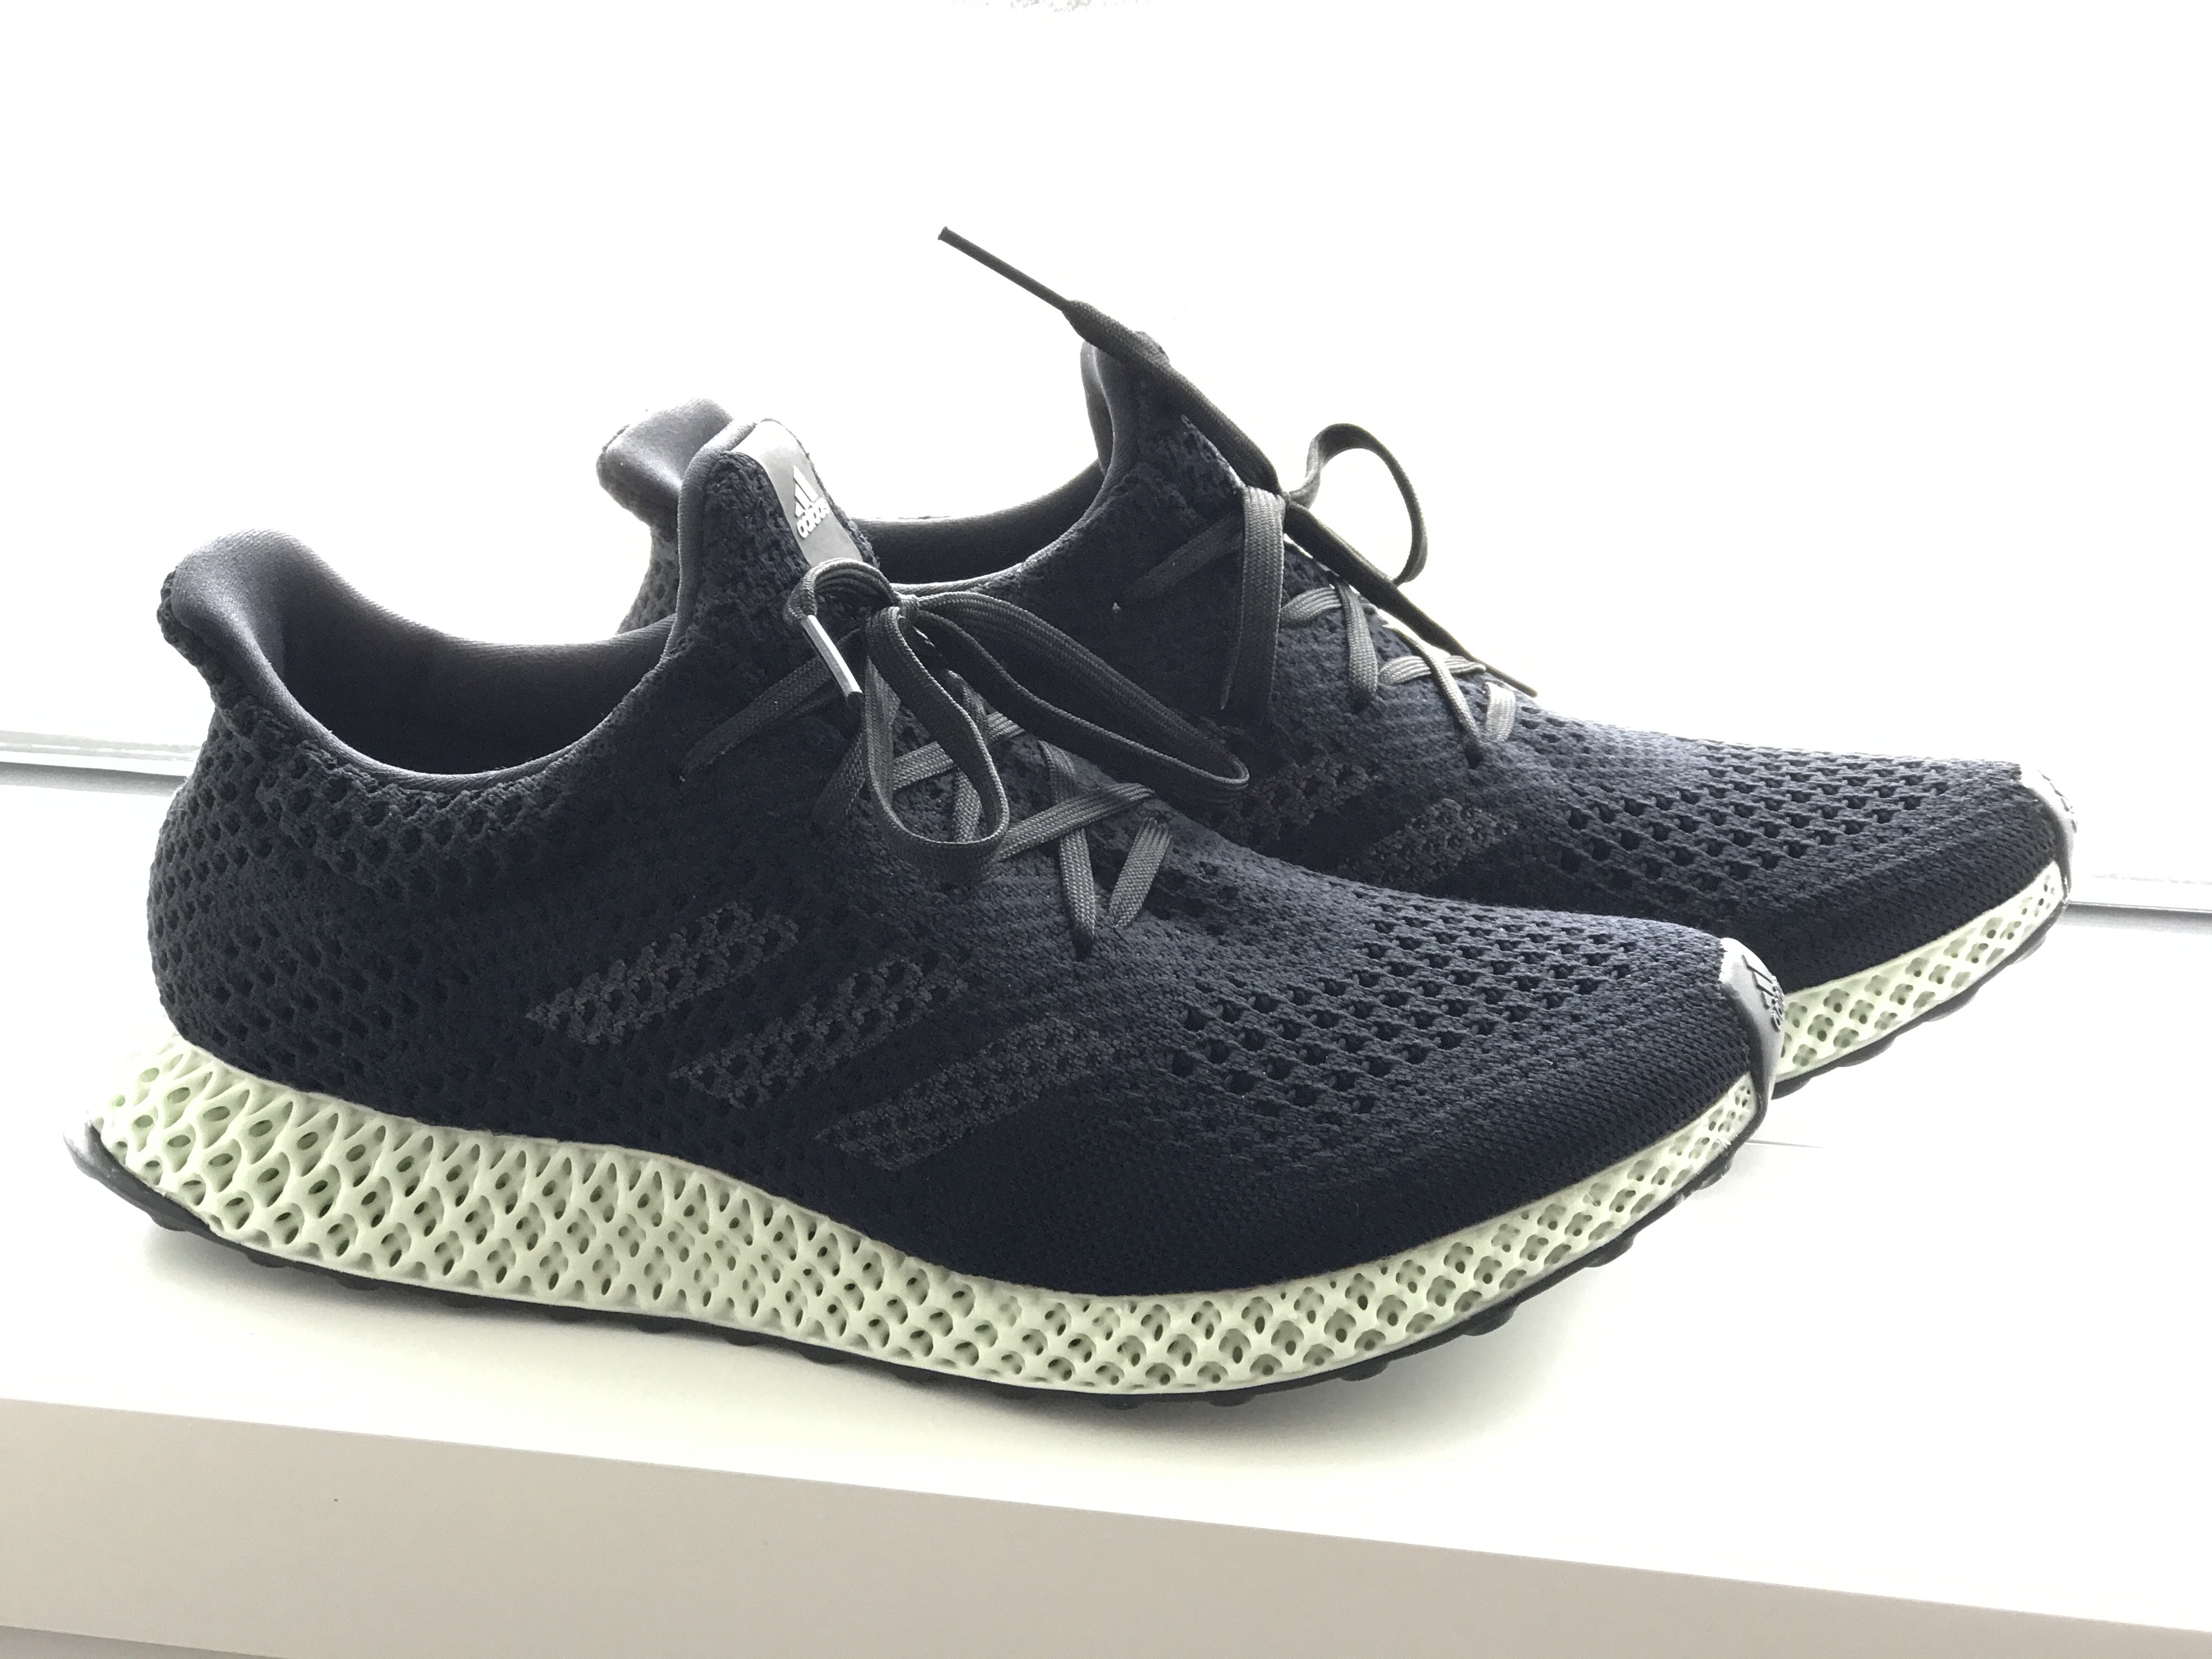 Adidas to release a new version of 3D printed shoe